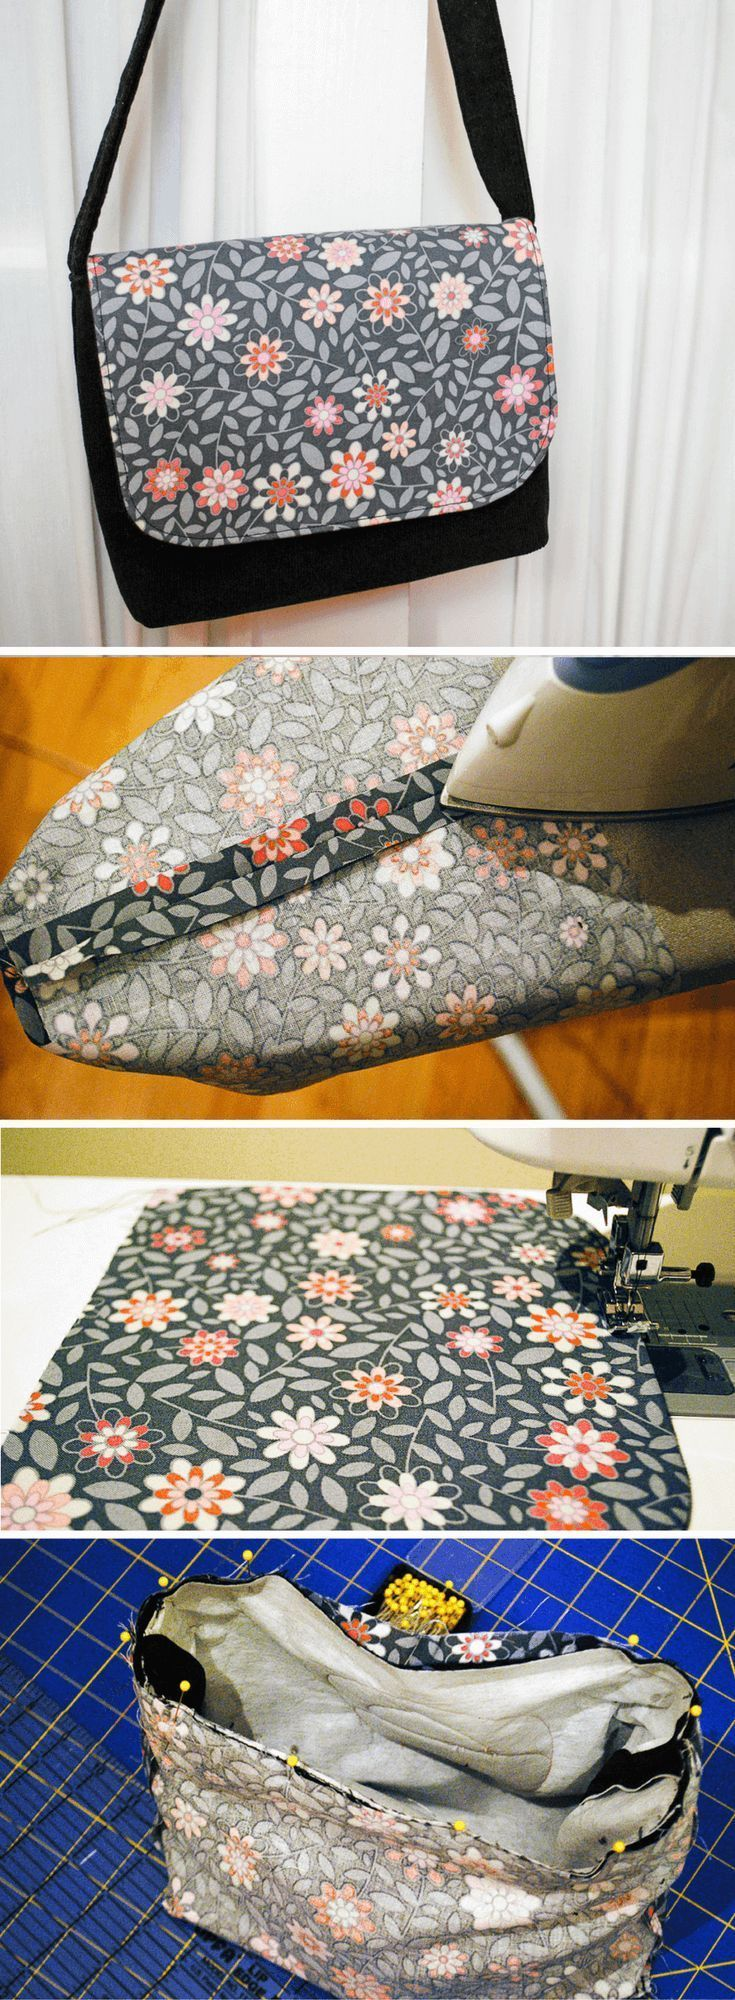 Free sewing pattern for a kid-sized messenger bag. It's an easy DIY sewing project for beginners and makes a great DIY gift for kids! #kids #messengerbag #diy #sewing #easydiy